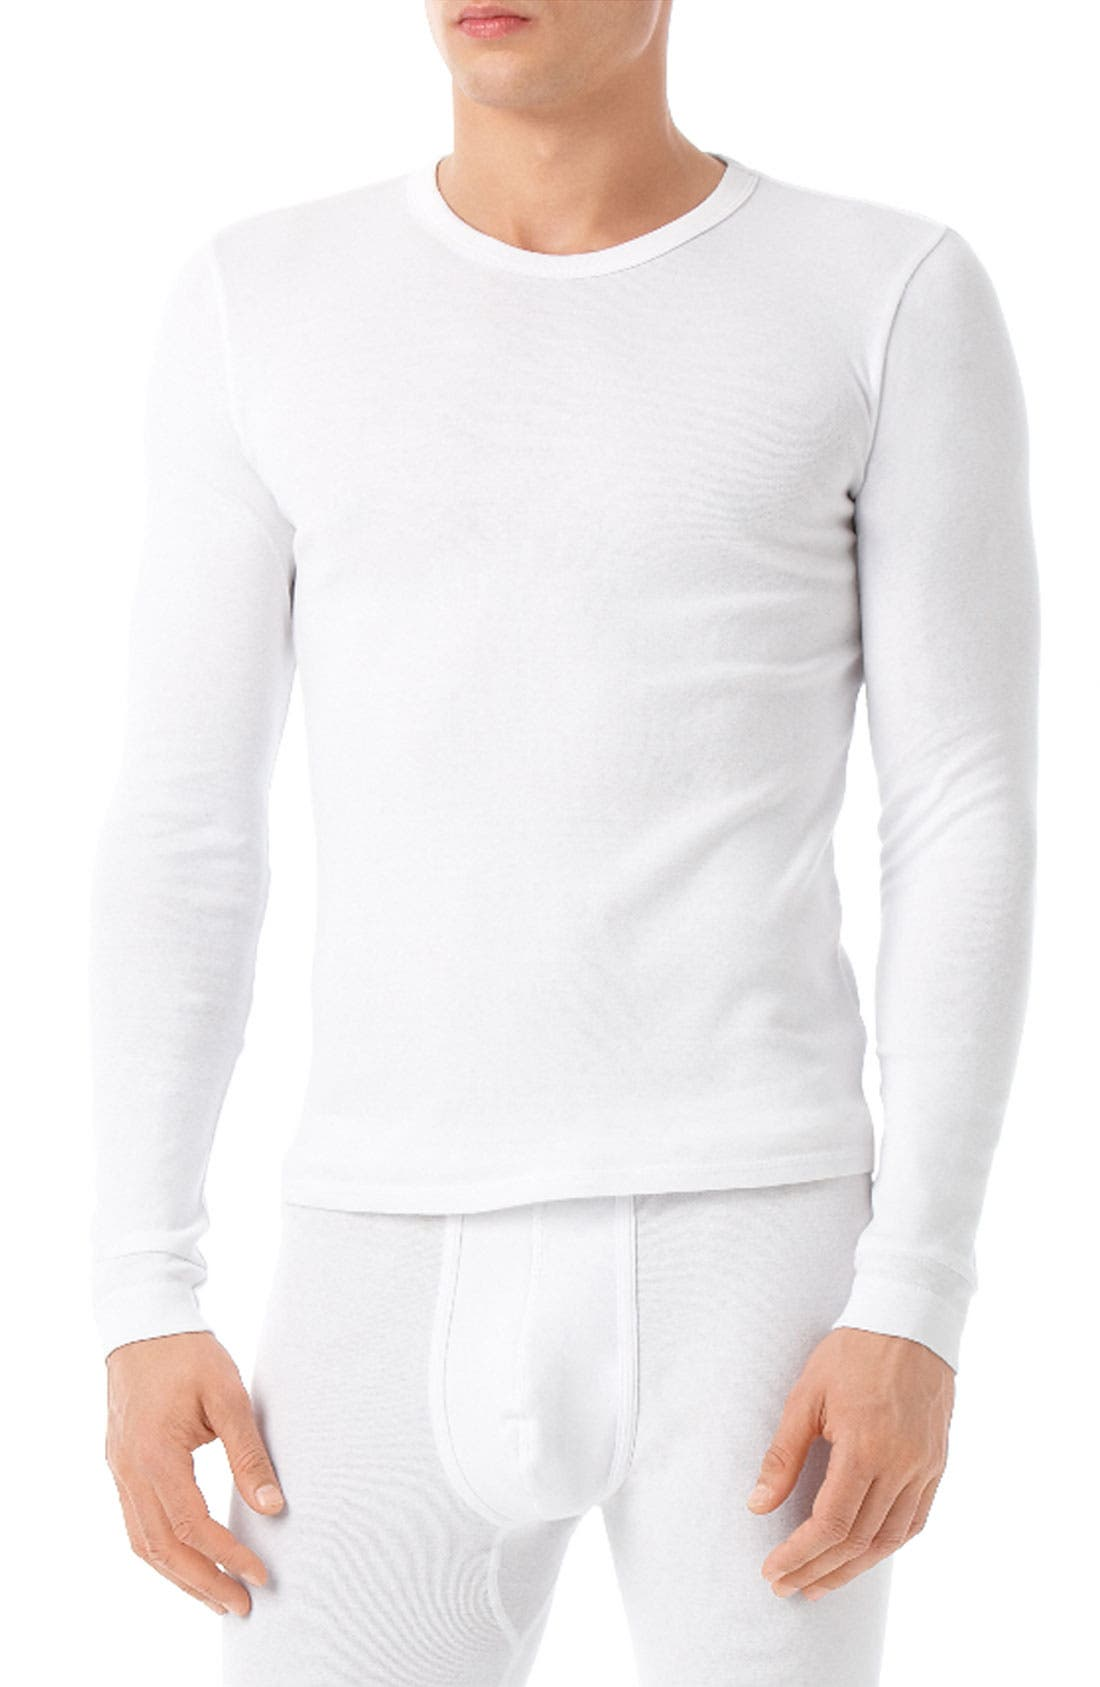 Alternate Image 1 Selected - Calvin Klein Fitted Long Sleeve Crewneck Shirt